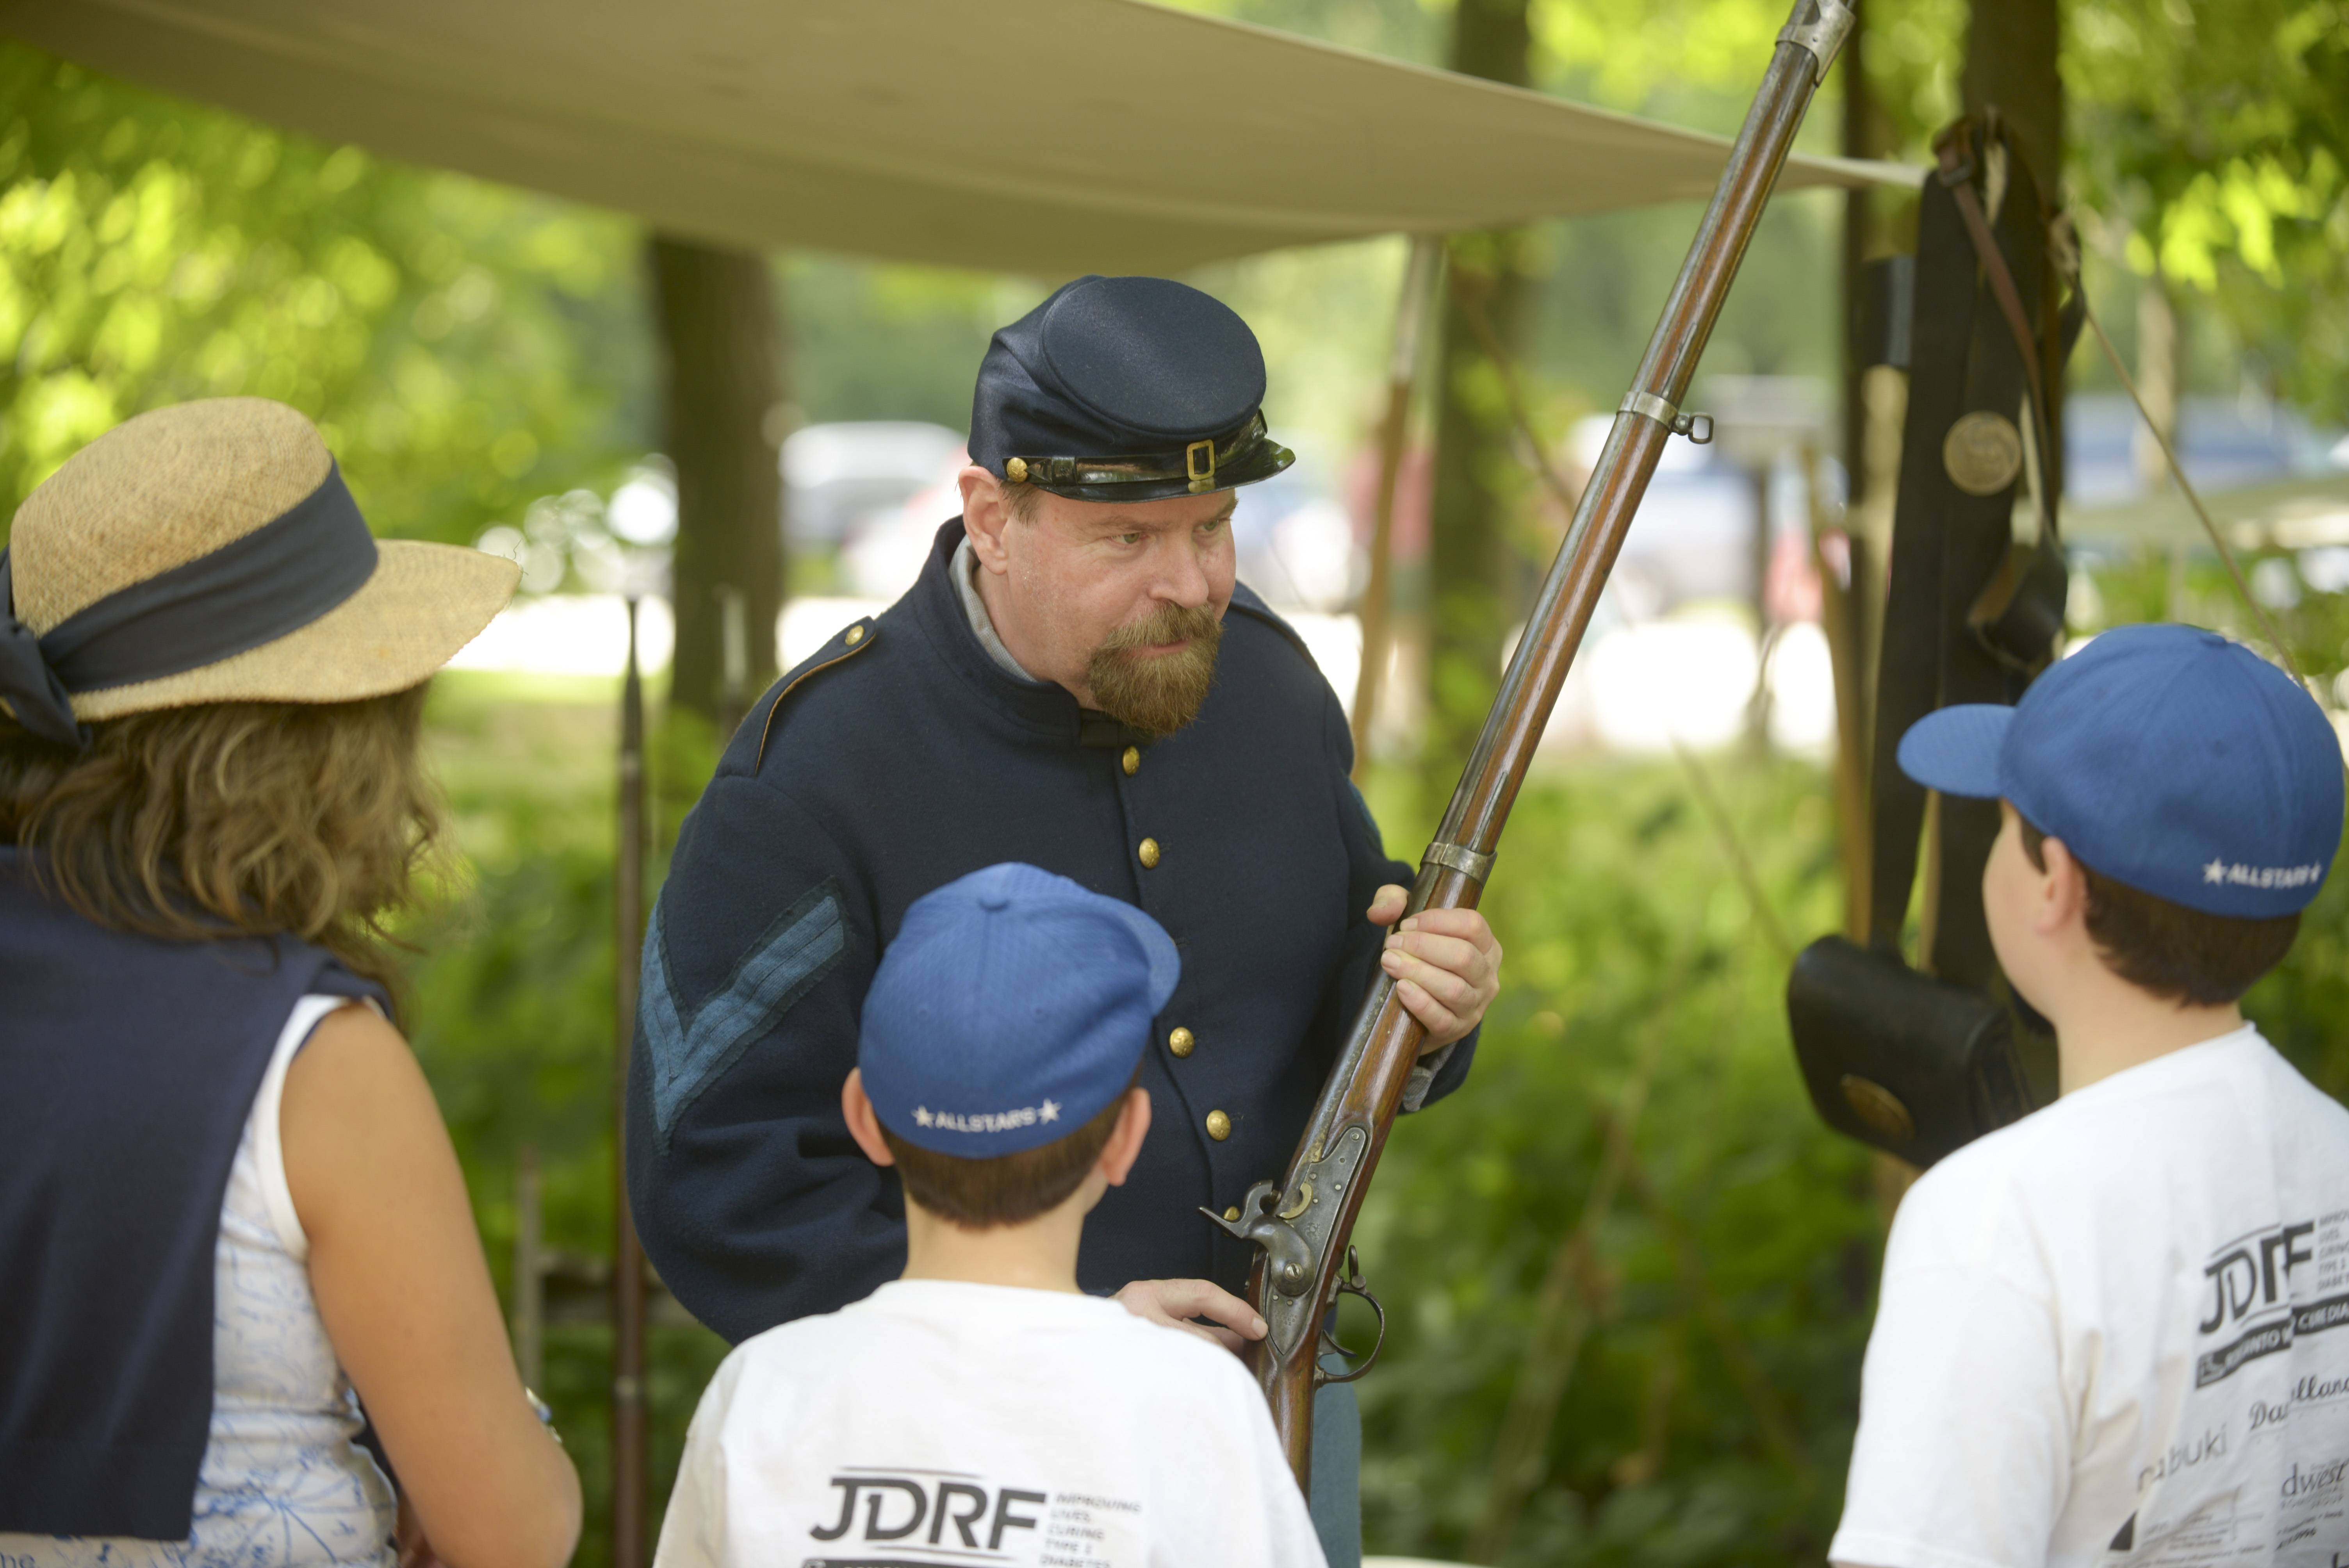 Bob Winter of Lombard, who has been involved in Civil War re-enacting for 25 years, talks to visitors Sunday at the Civil War Encampment at Graue Mill and Museum in Oak Brook. The event featured demonstrations of combat tactics and medical treatment from the Civil War era.